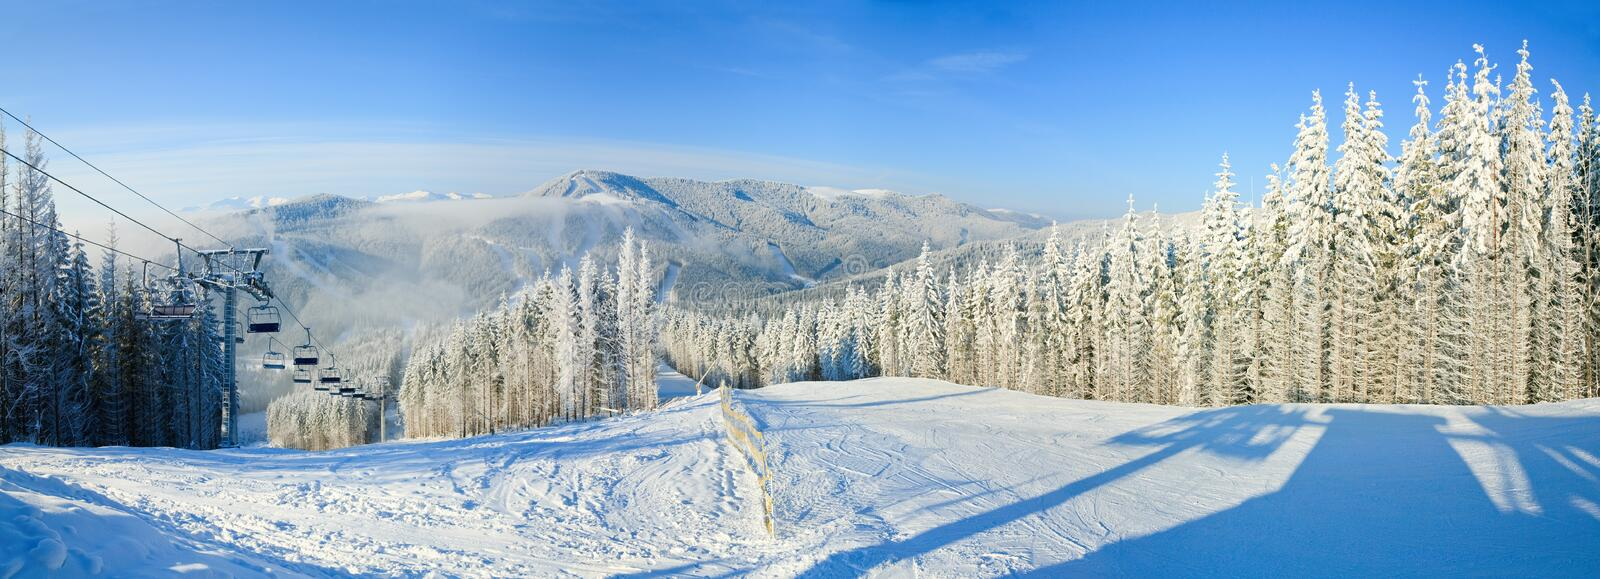 Winter mountain landscape with ski lift. And skiing slope. Bukovel ski resort, Ukraine. Three shots stitch image royalty free stock image